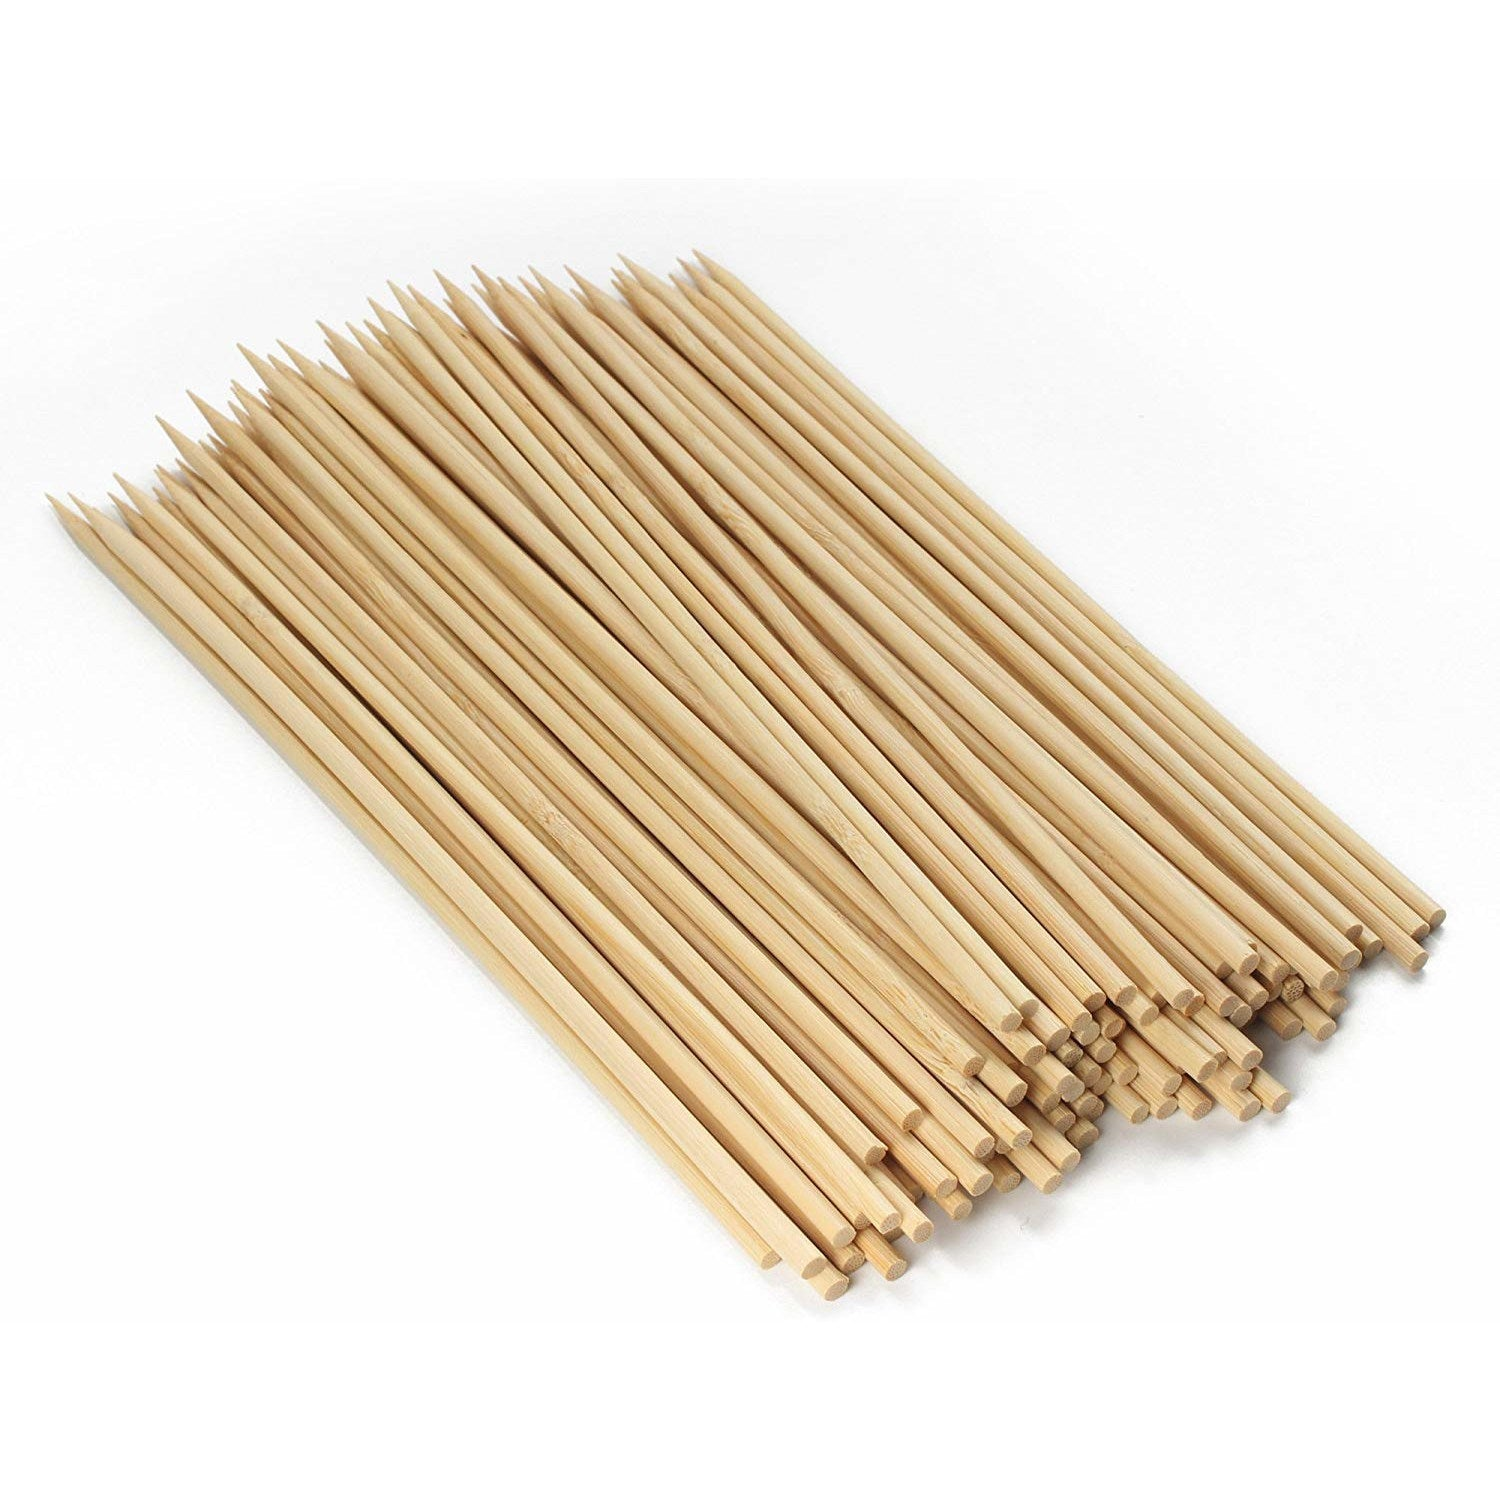 "Bamboo Skewers Round 150mm/6.0"" 20/PK"